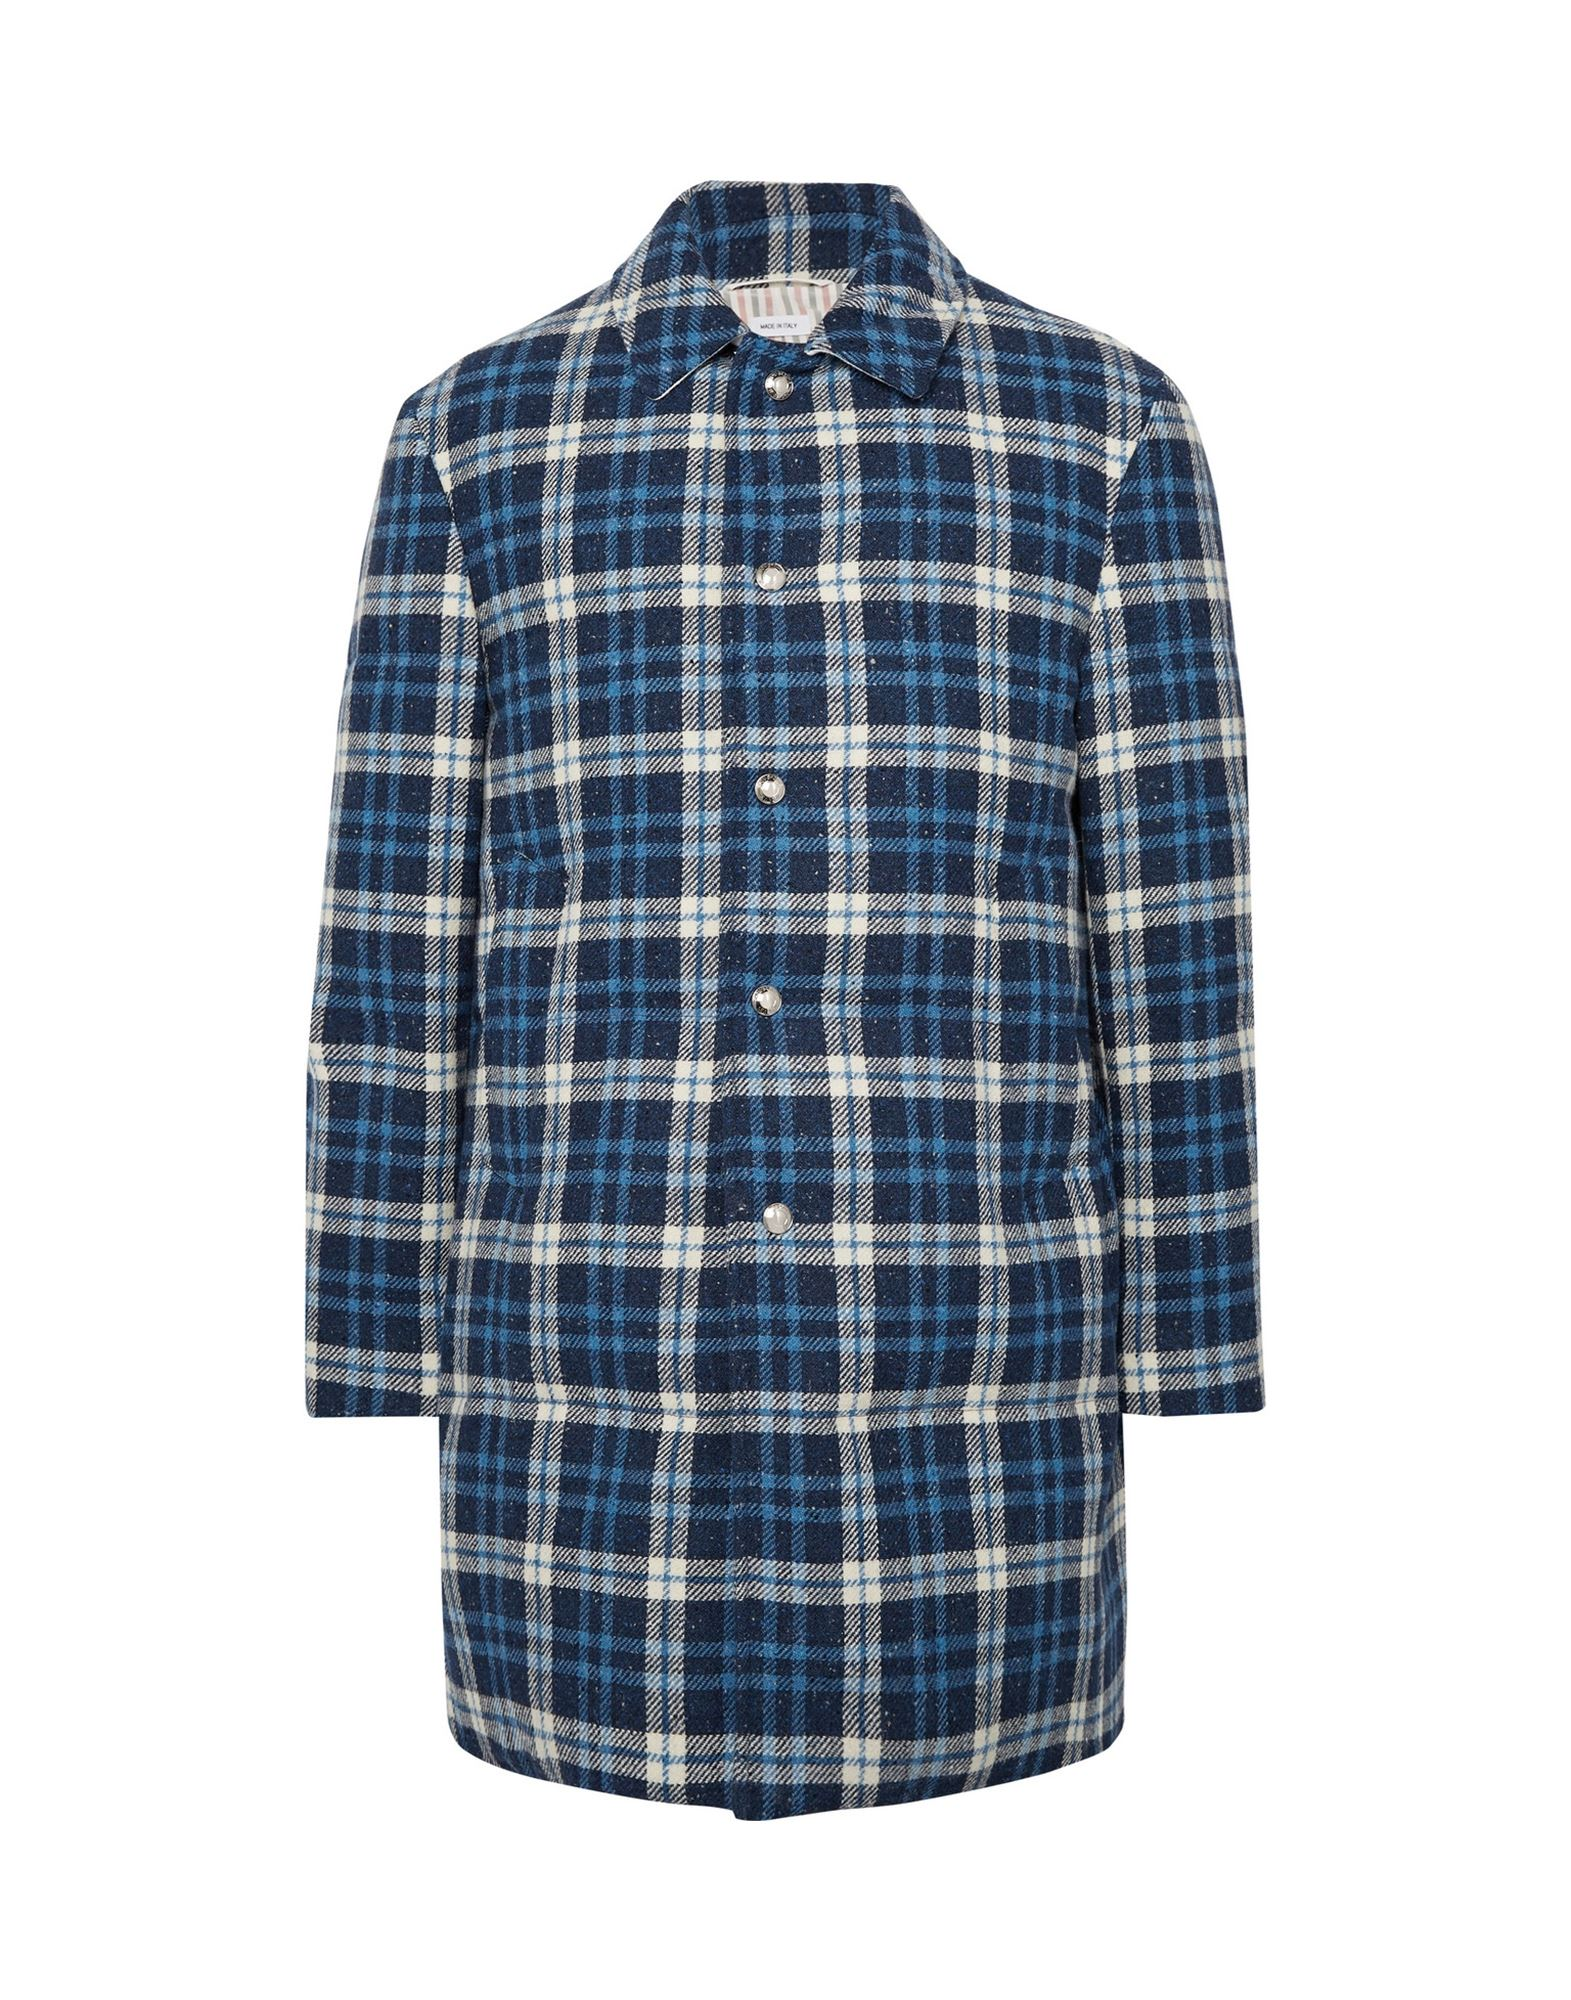 THOM BROWNE Coats. single-breasted, logo, tartan plaid, multipockets, long sleeves, fully lined. 100% Wool